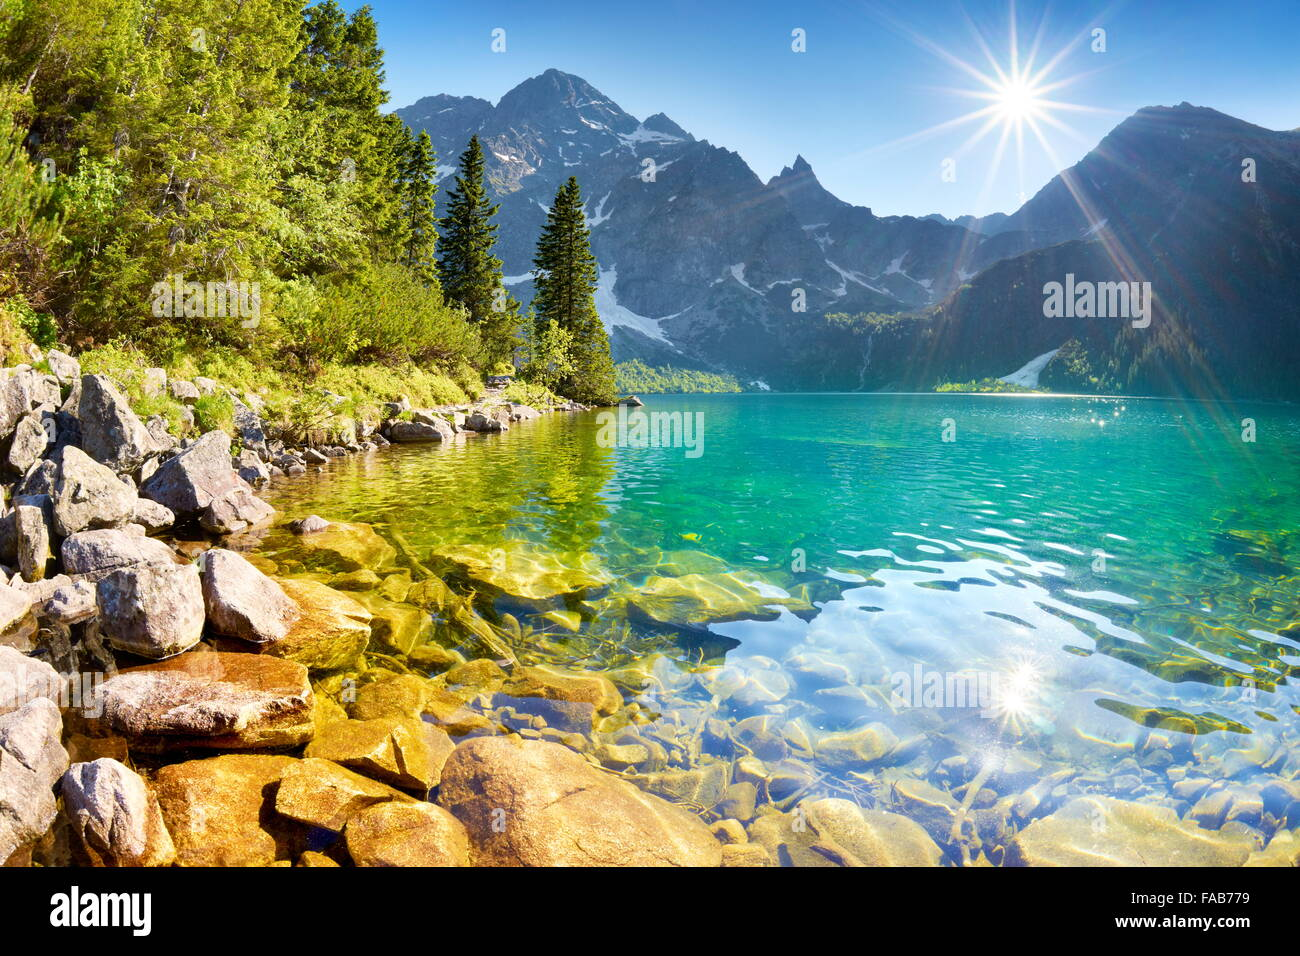 Le lac Morskie Oko, Tatras, Pologne Photo Stock